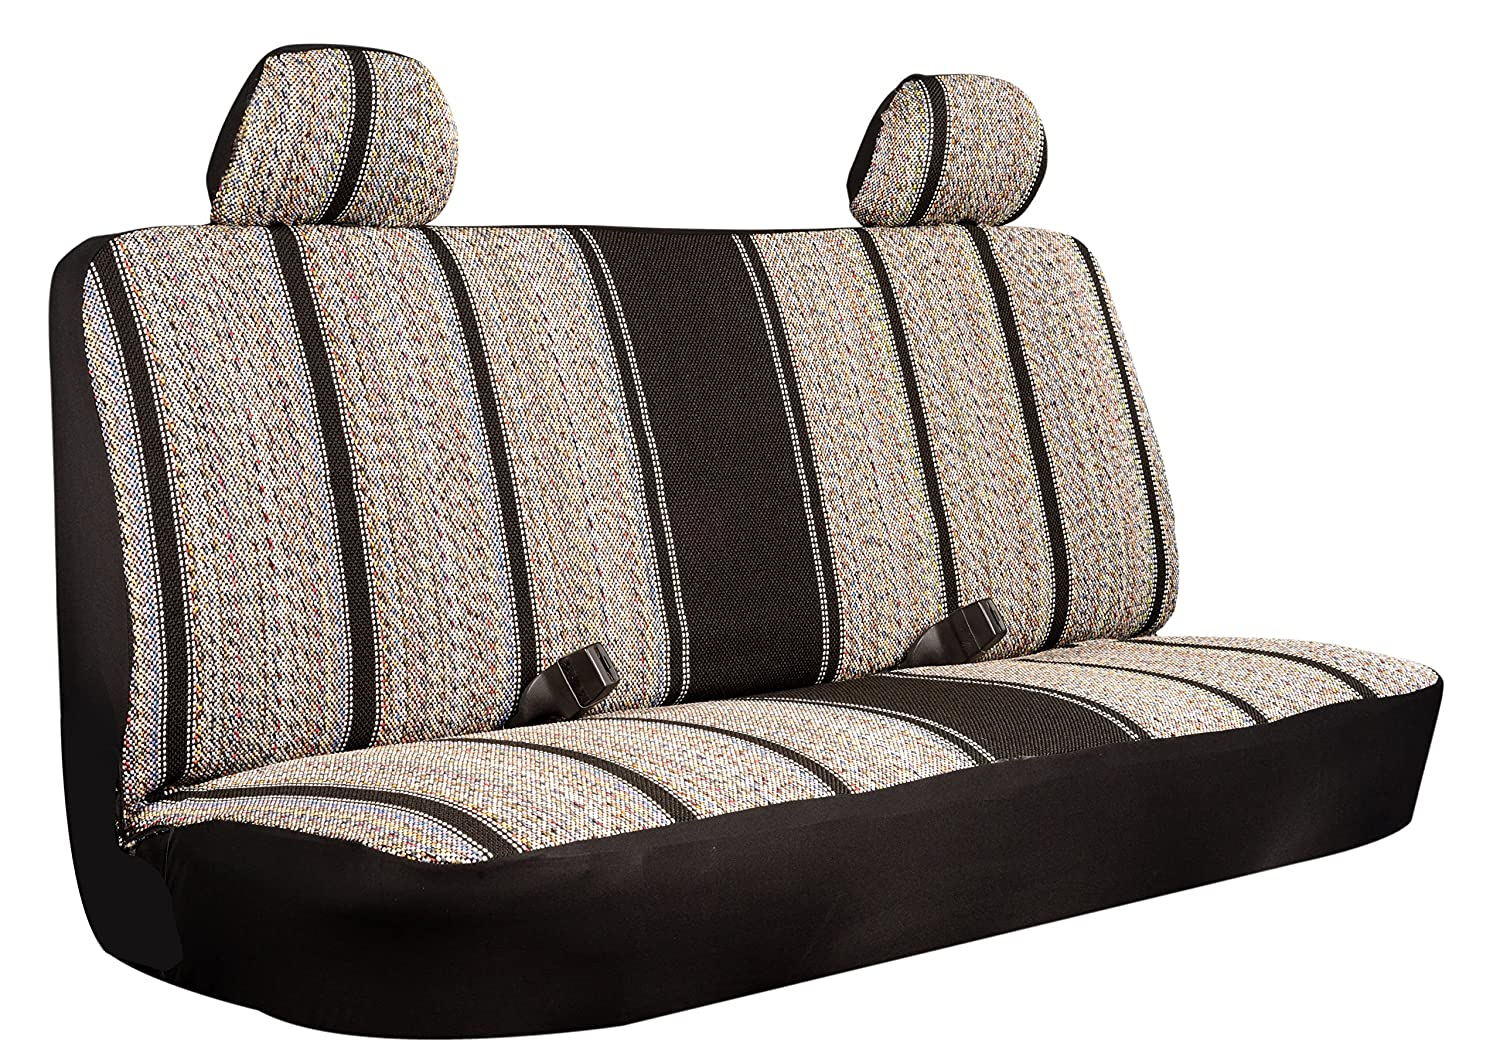 Allison 67-6889BLK Black Rough 'N Ready Large Truck Bench Seat Cover - Pack of 1 Allison Corporation